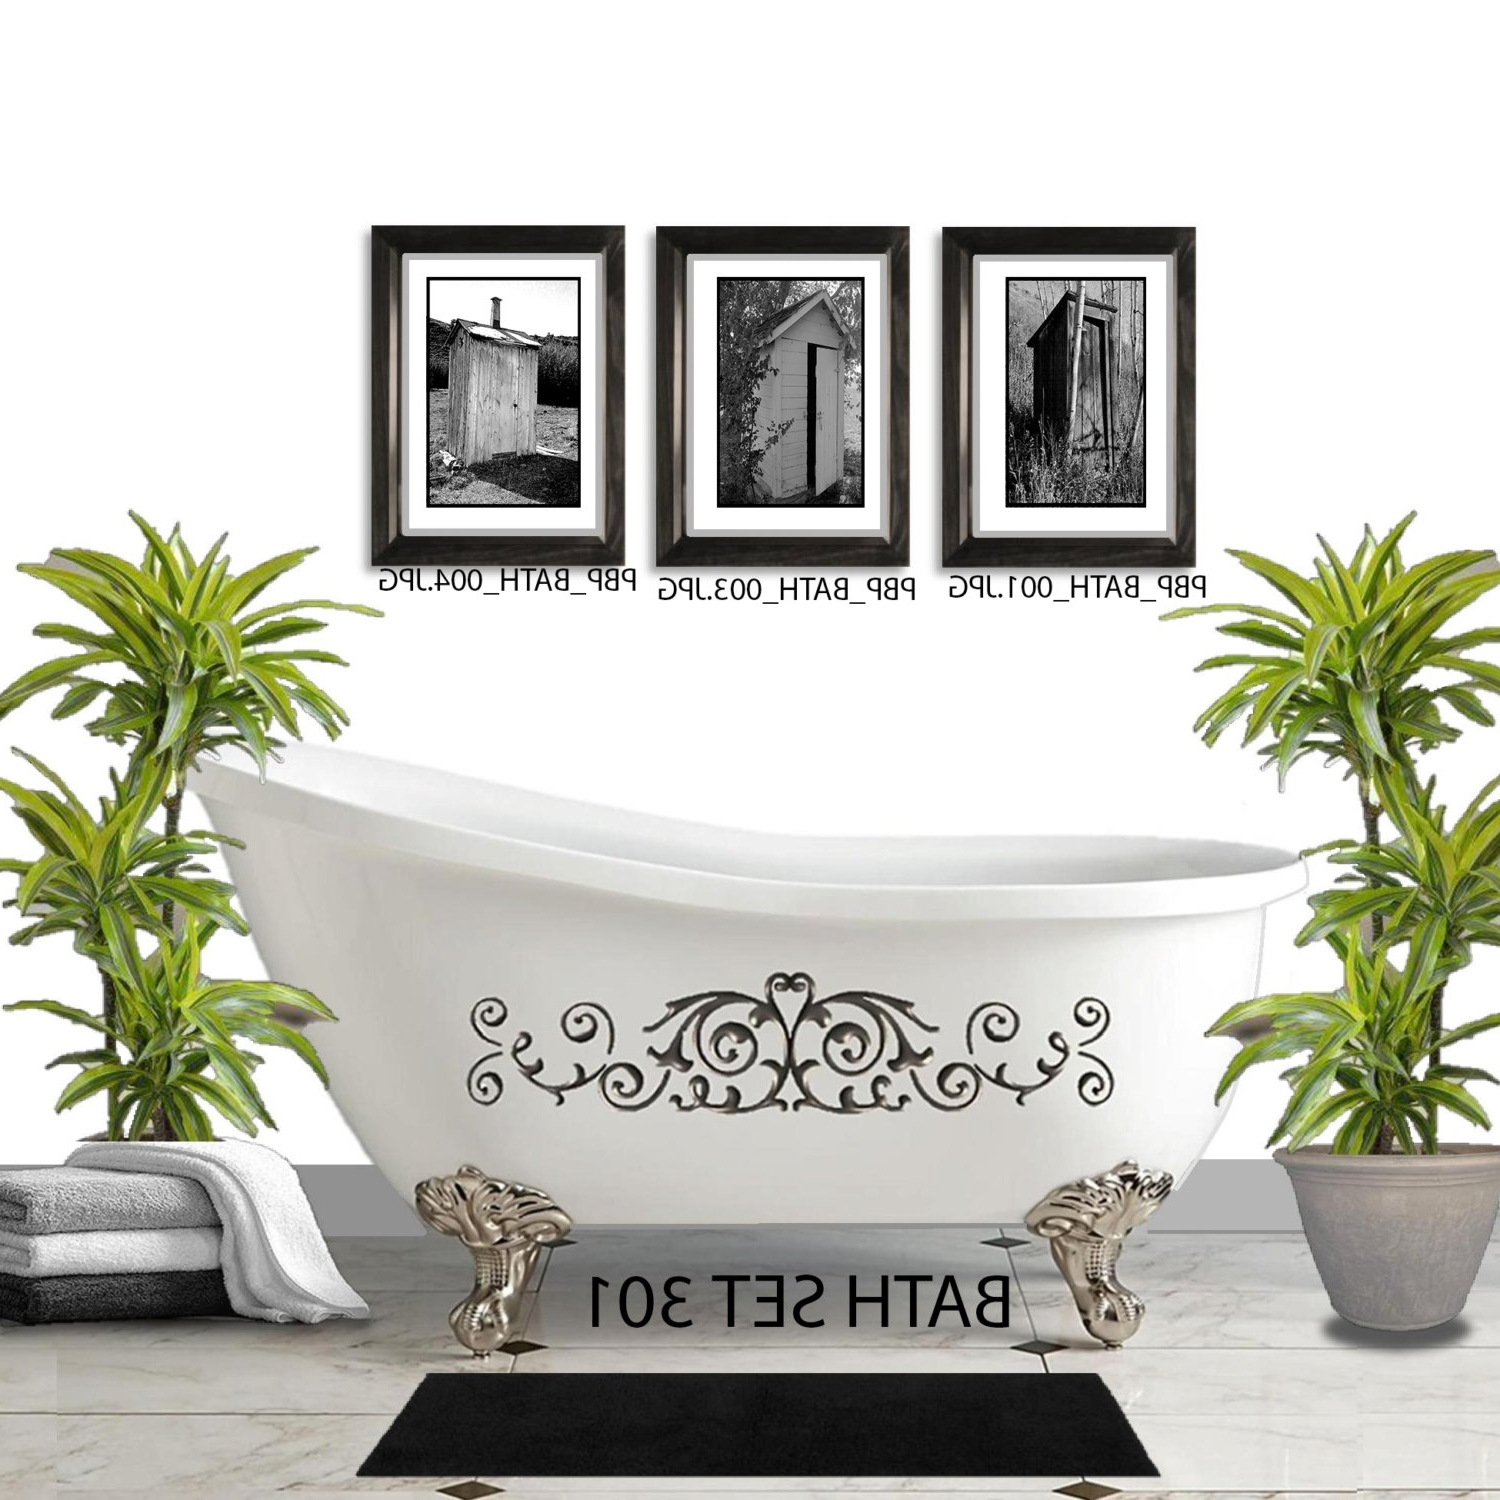 Vintage Bath Framed Art Prints Set Of 3 With Regard To Most Recent Wall Sets – Picturebypicturedesigns (Gallery 7 of 15)